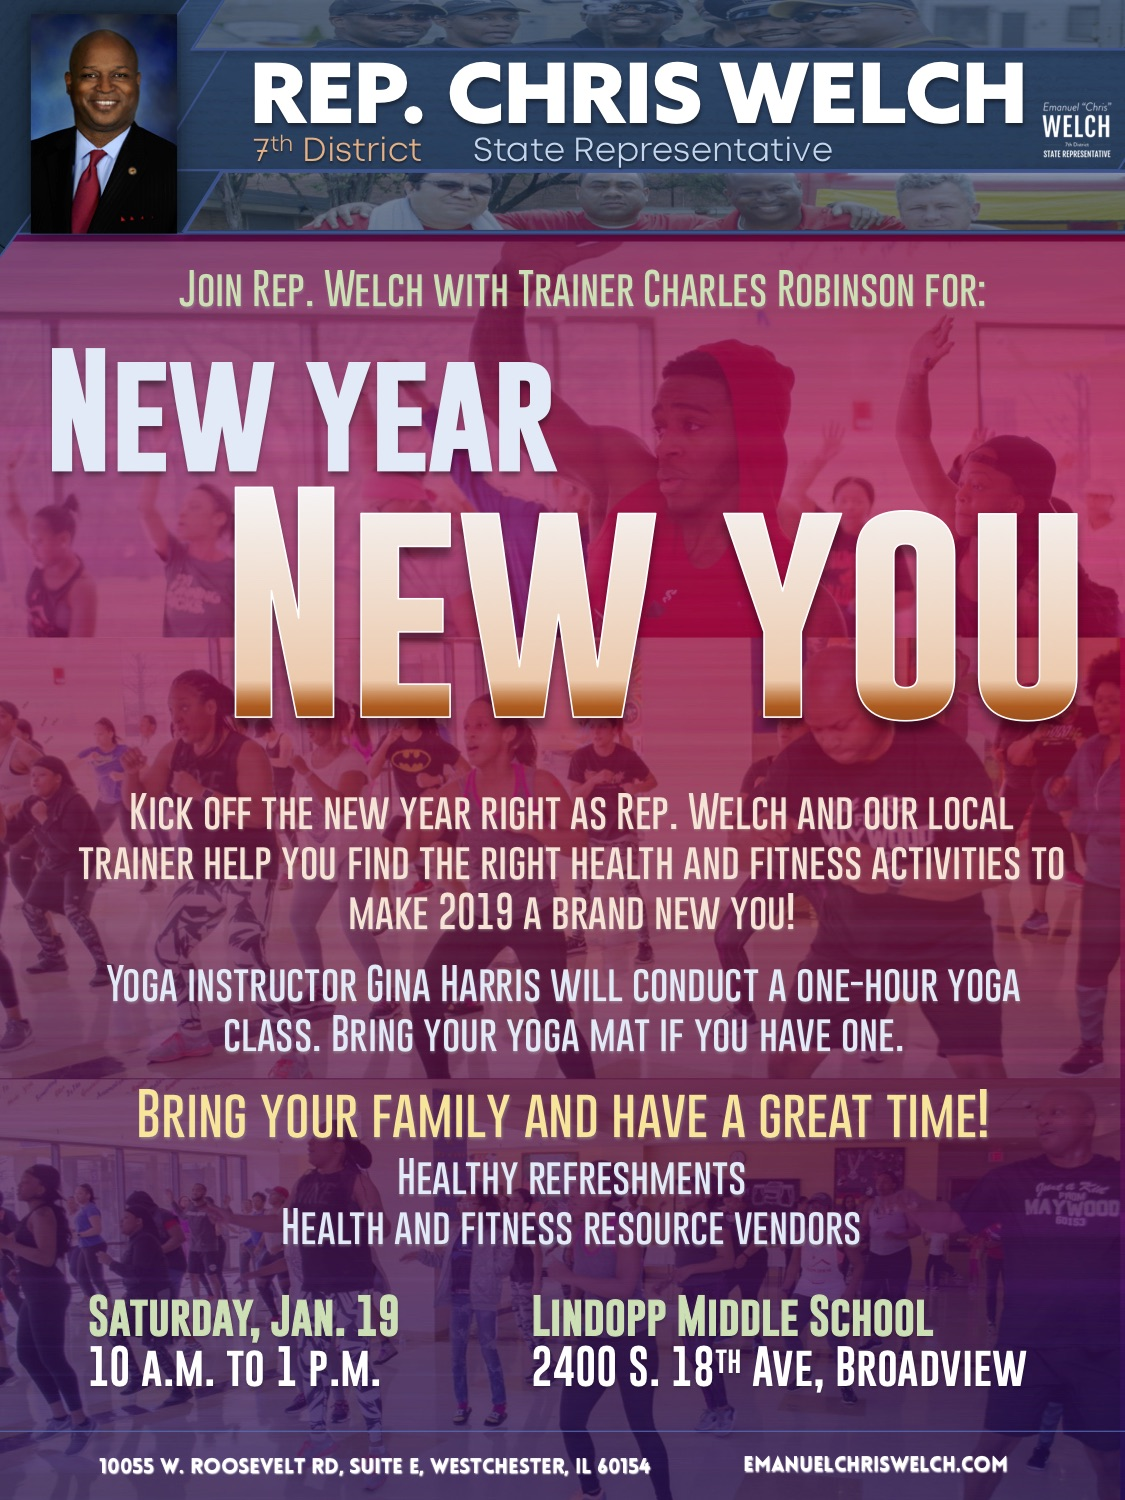 Rep. Welch New Year Workout flyer -- January 2019 updated.jpg